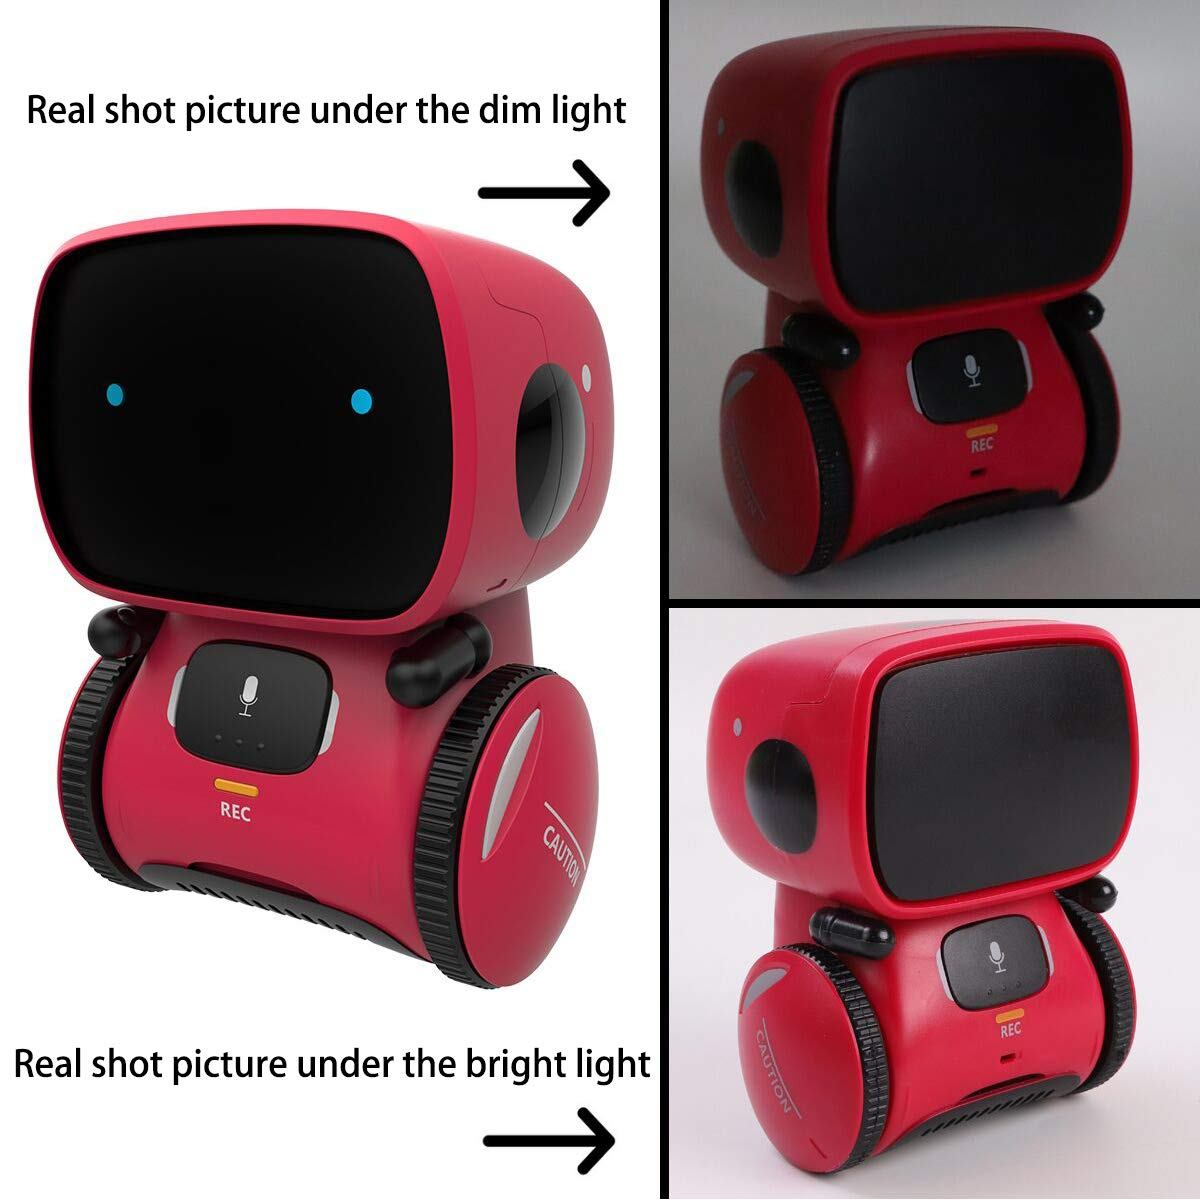 Kids Robot Toy, Smart Talking Robots, Gift for Boys and Girls Age 3+, Intelligent partner and teacher, with Voice Controlled and Touch Sensor, Singing, Dancing, Repeating by 98K (Image #6)